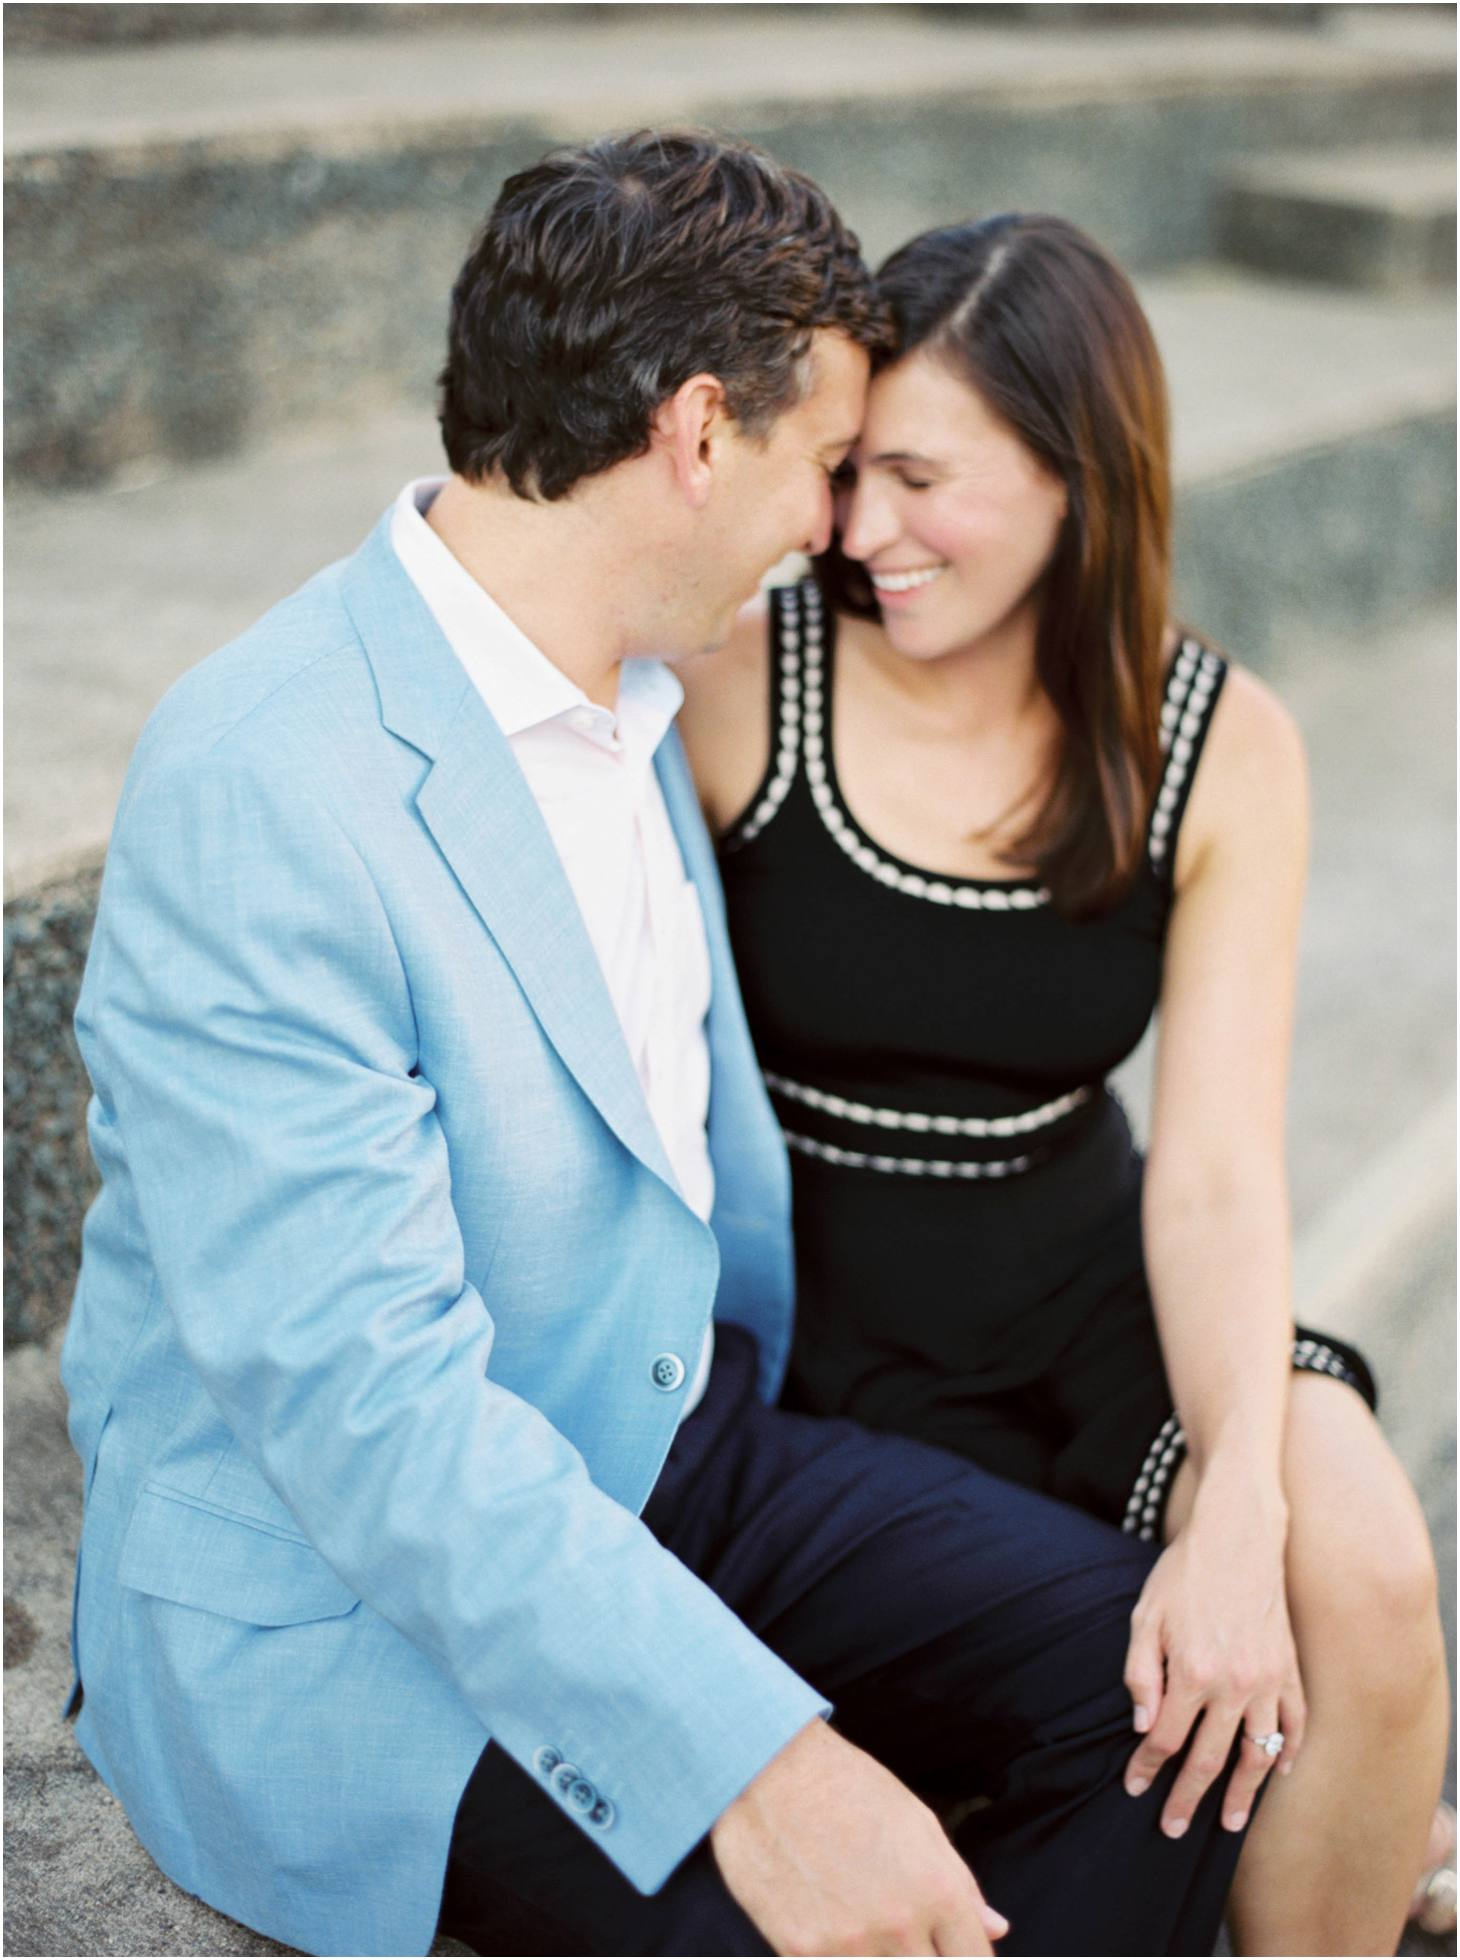 kim-stockwell-photography-fine-art-film-engagements-charlottesville-virginia-meghan-and-taylor_0836